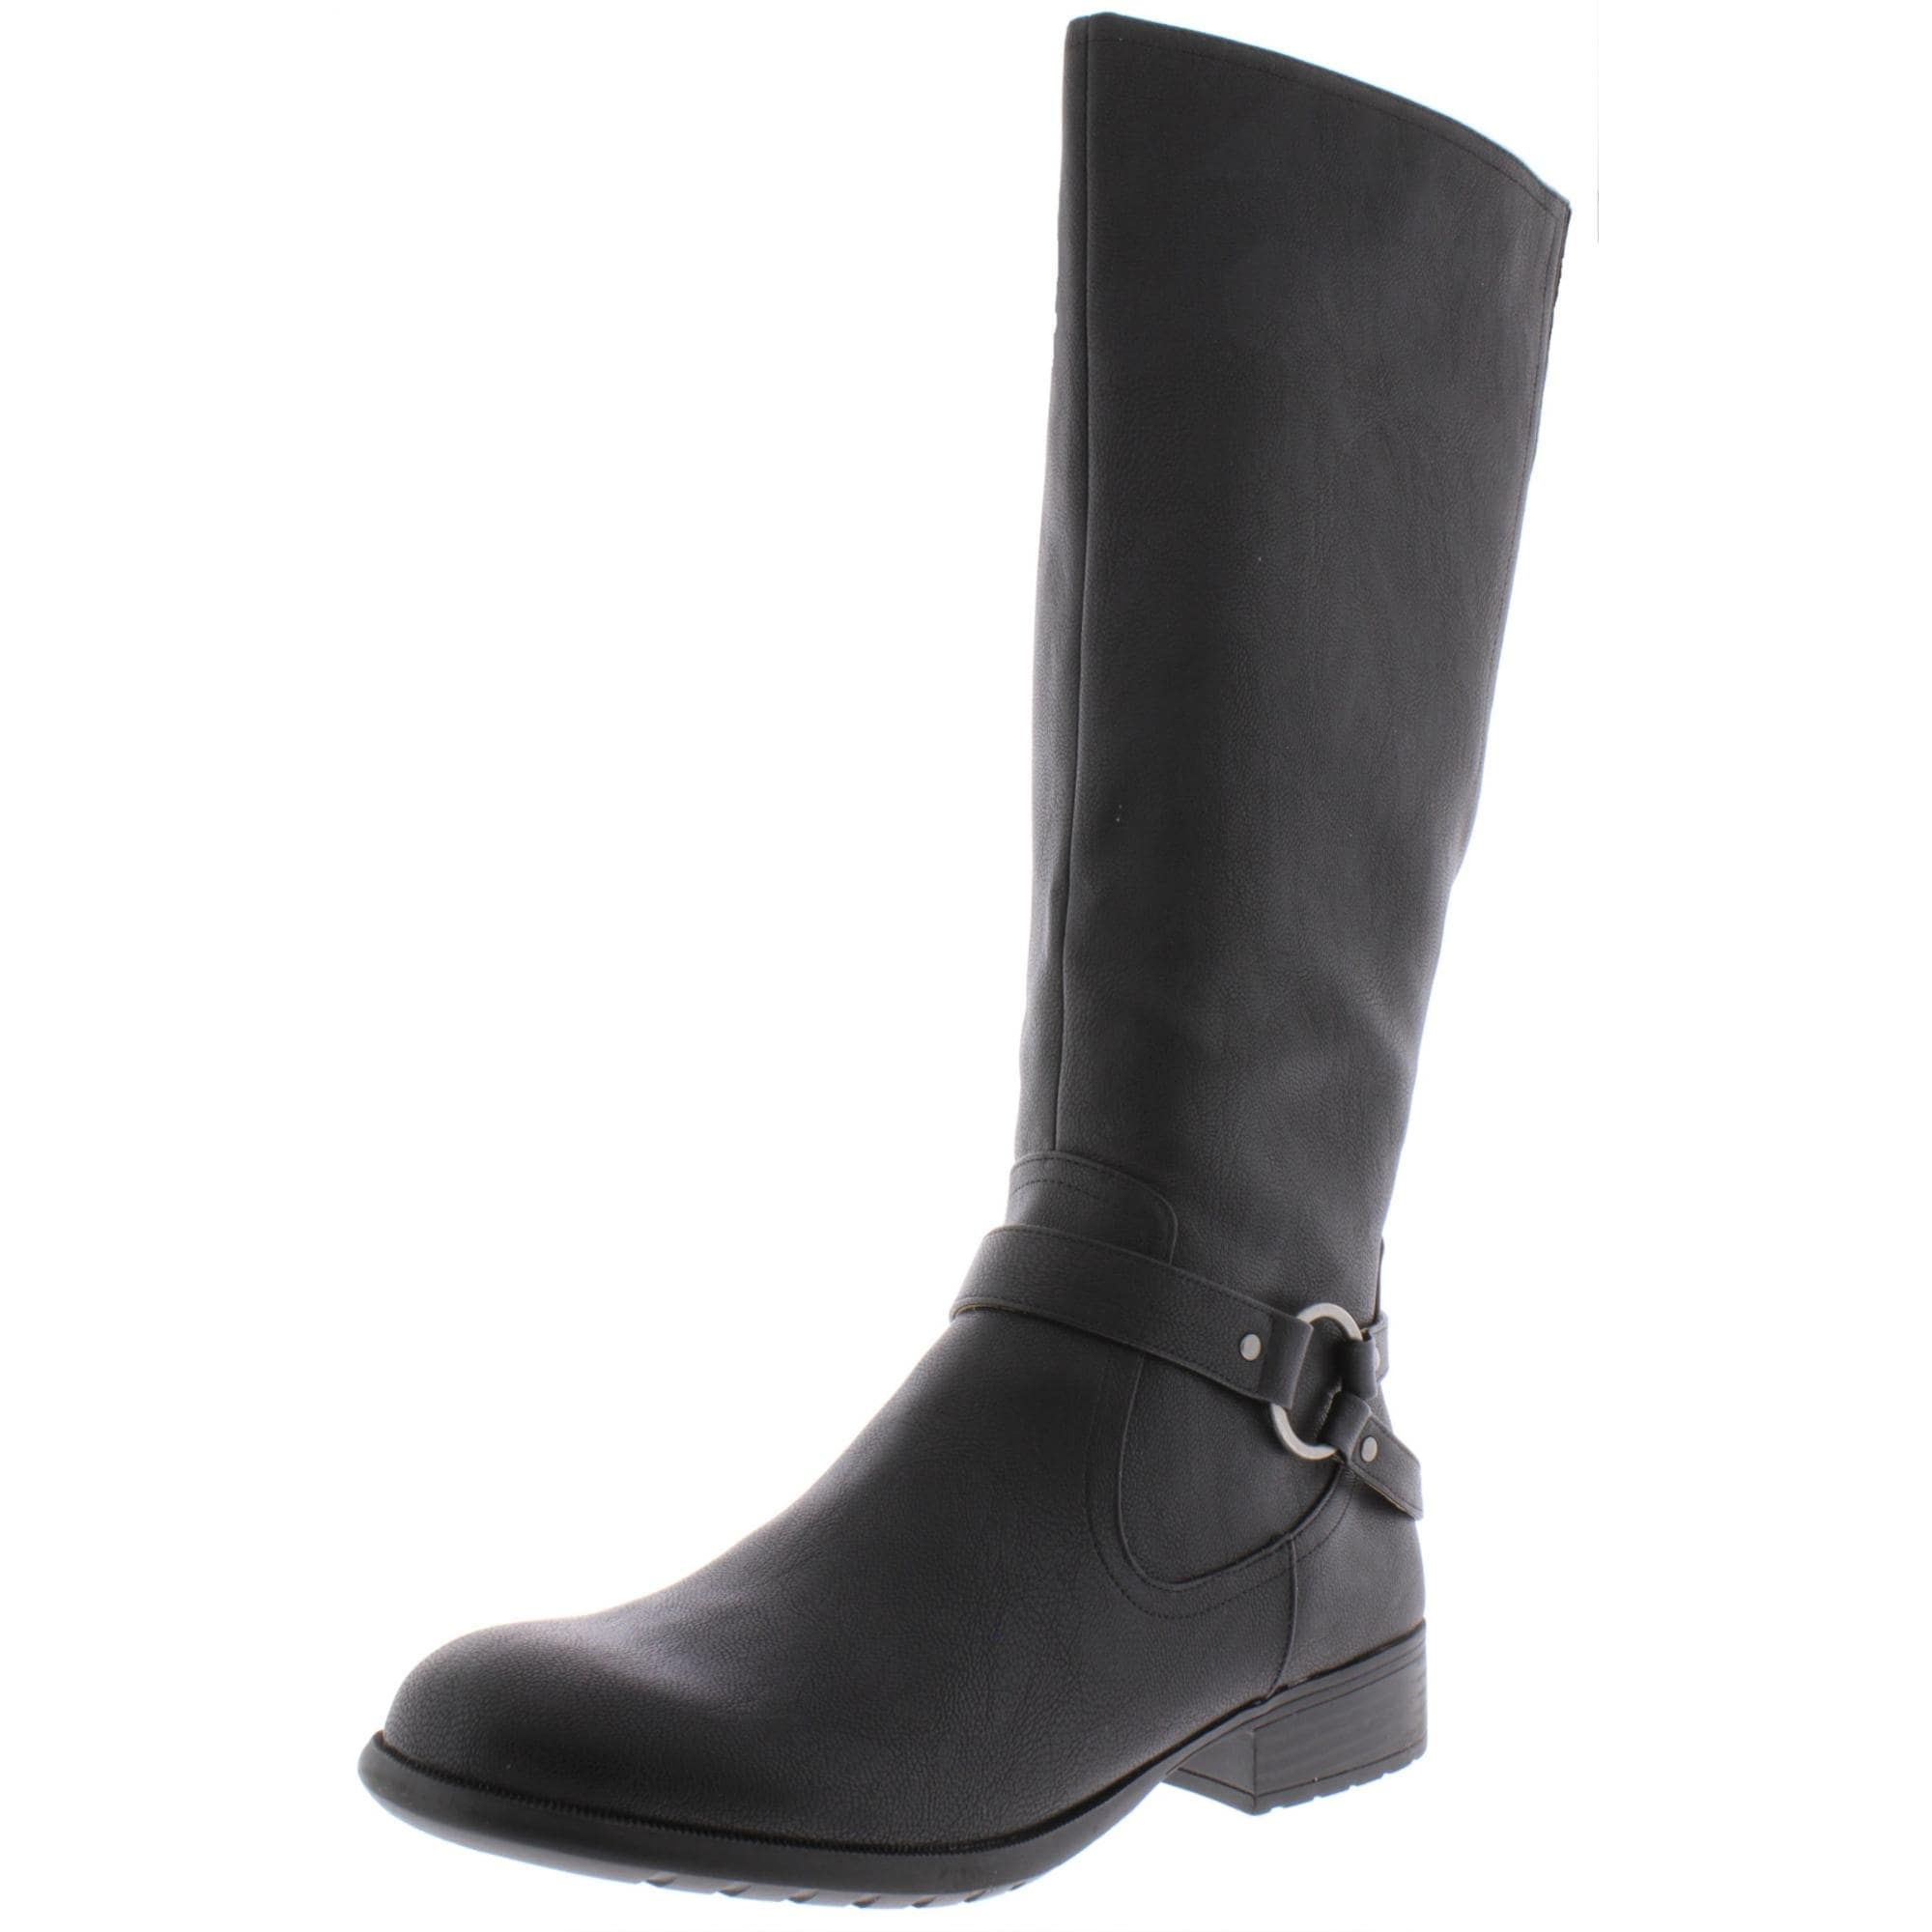 Tall Black Leather Boots For Women